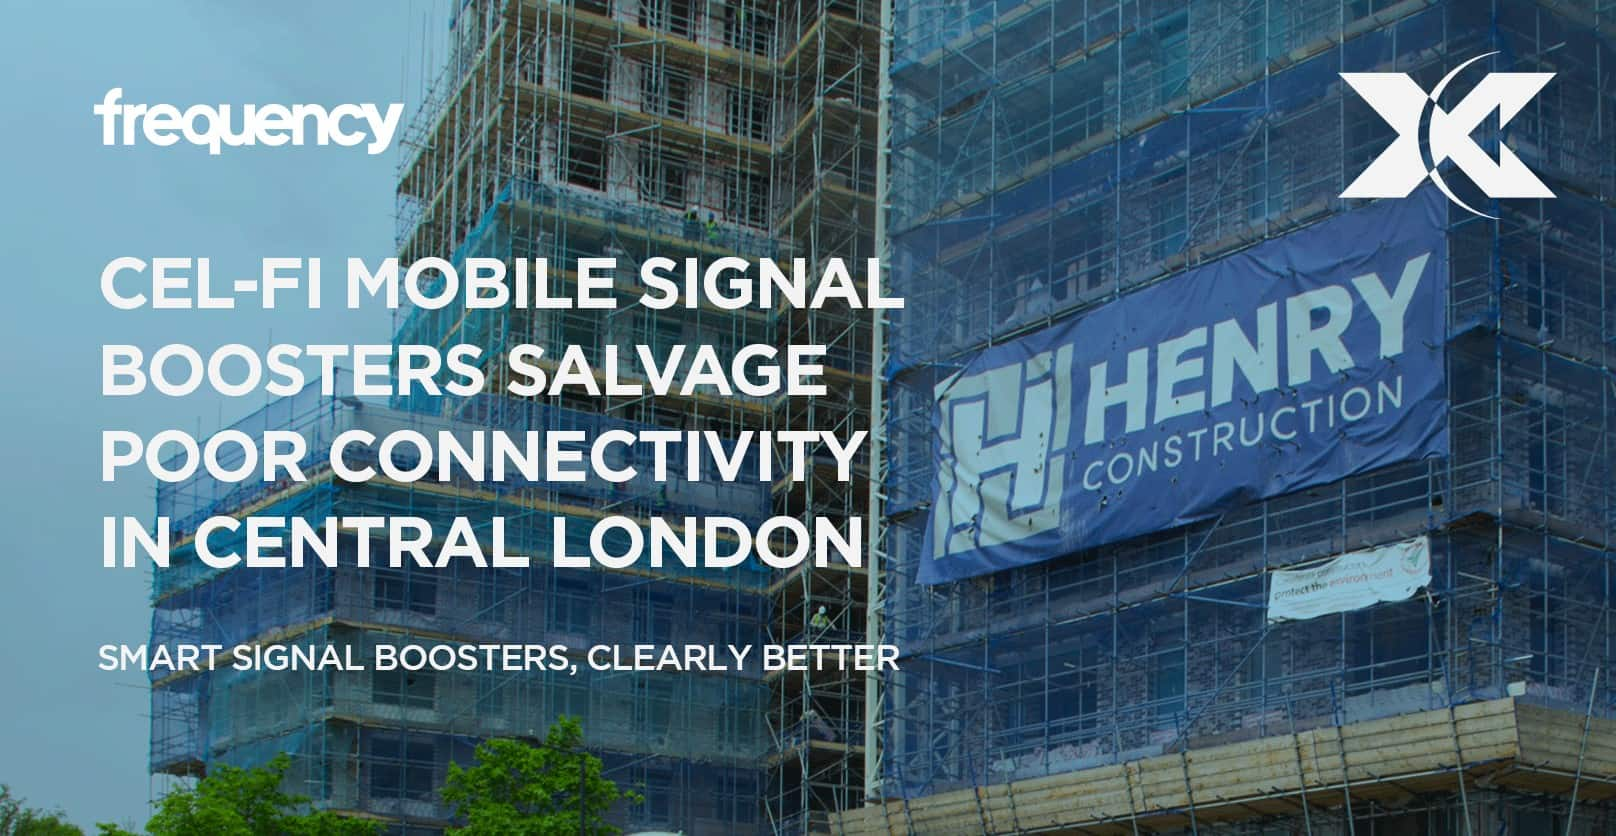 Salvage Signal Henry Construction